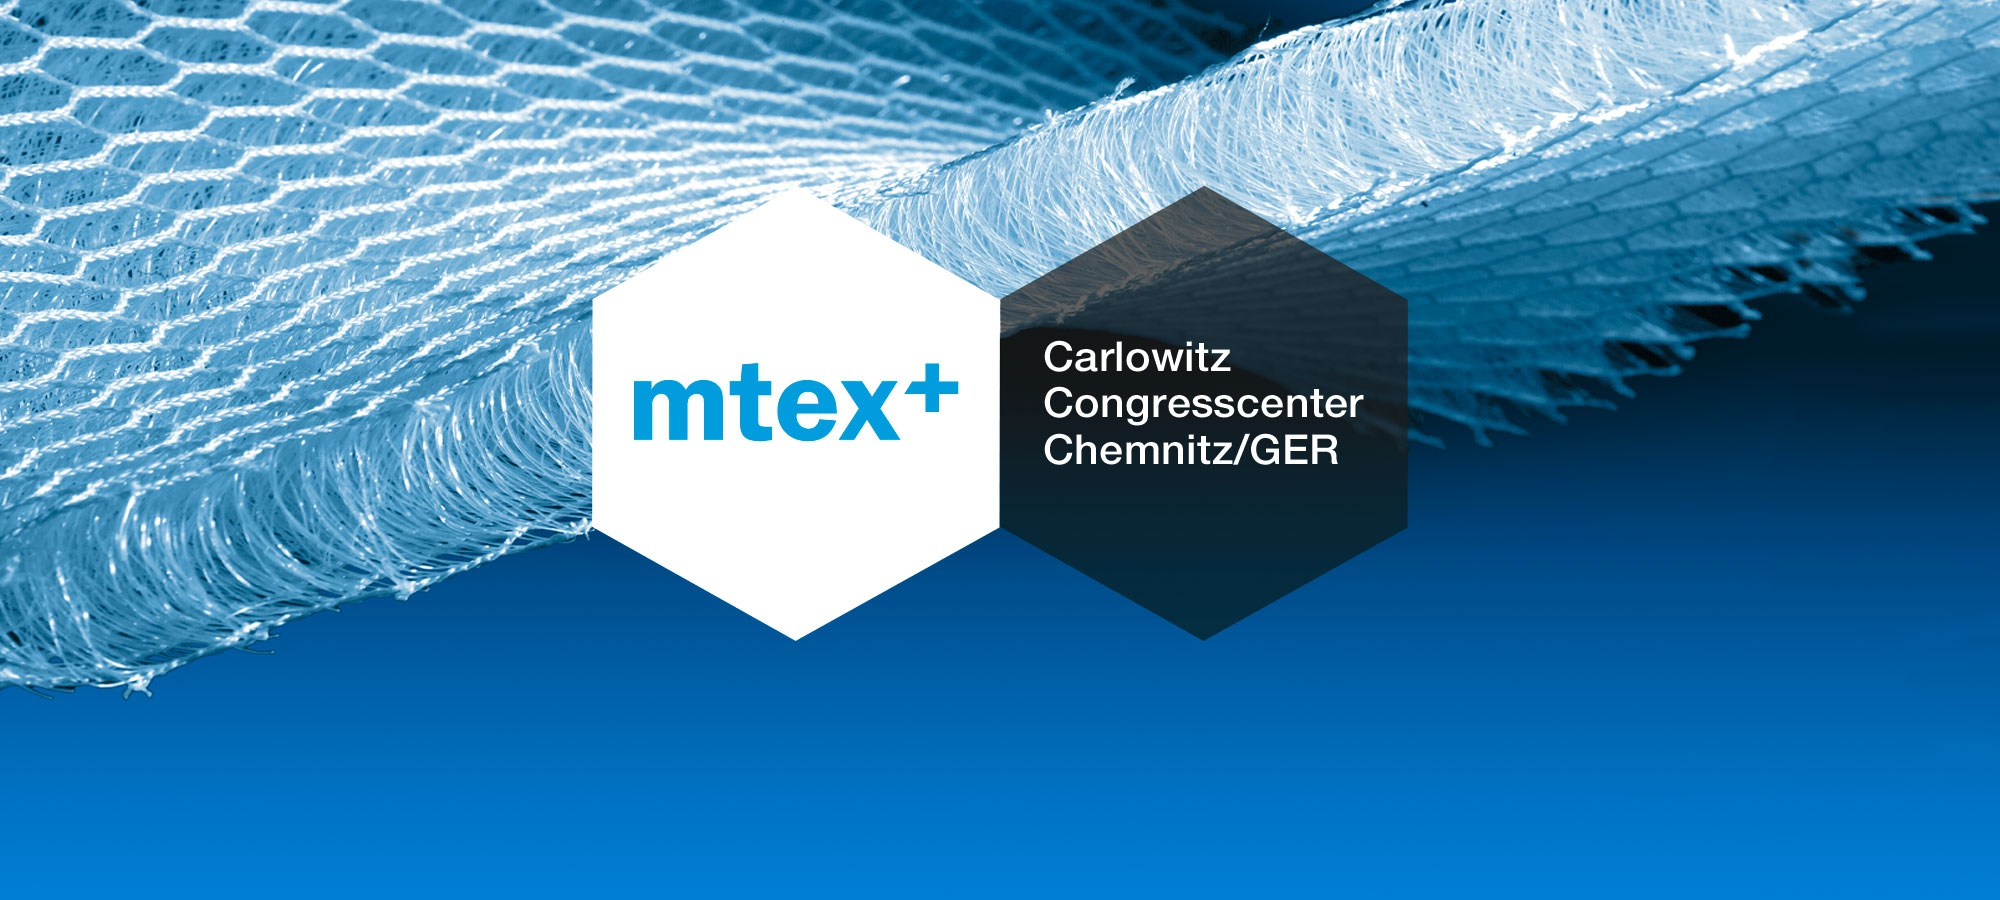 Header mtex+2020_Fair & Convention_Carlowitz Congresscenter Chemnitz